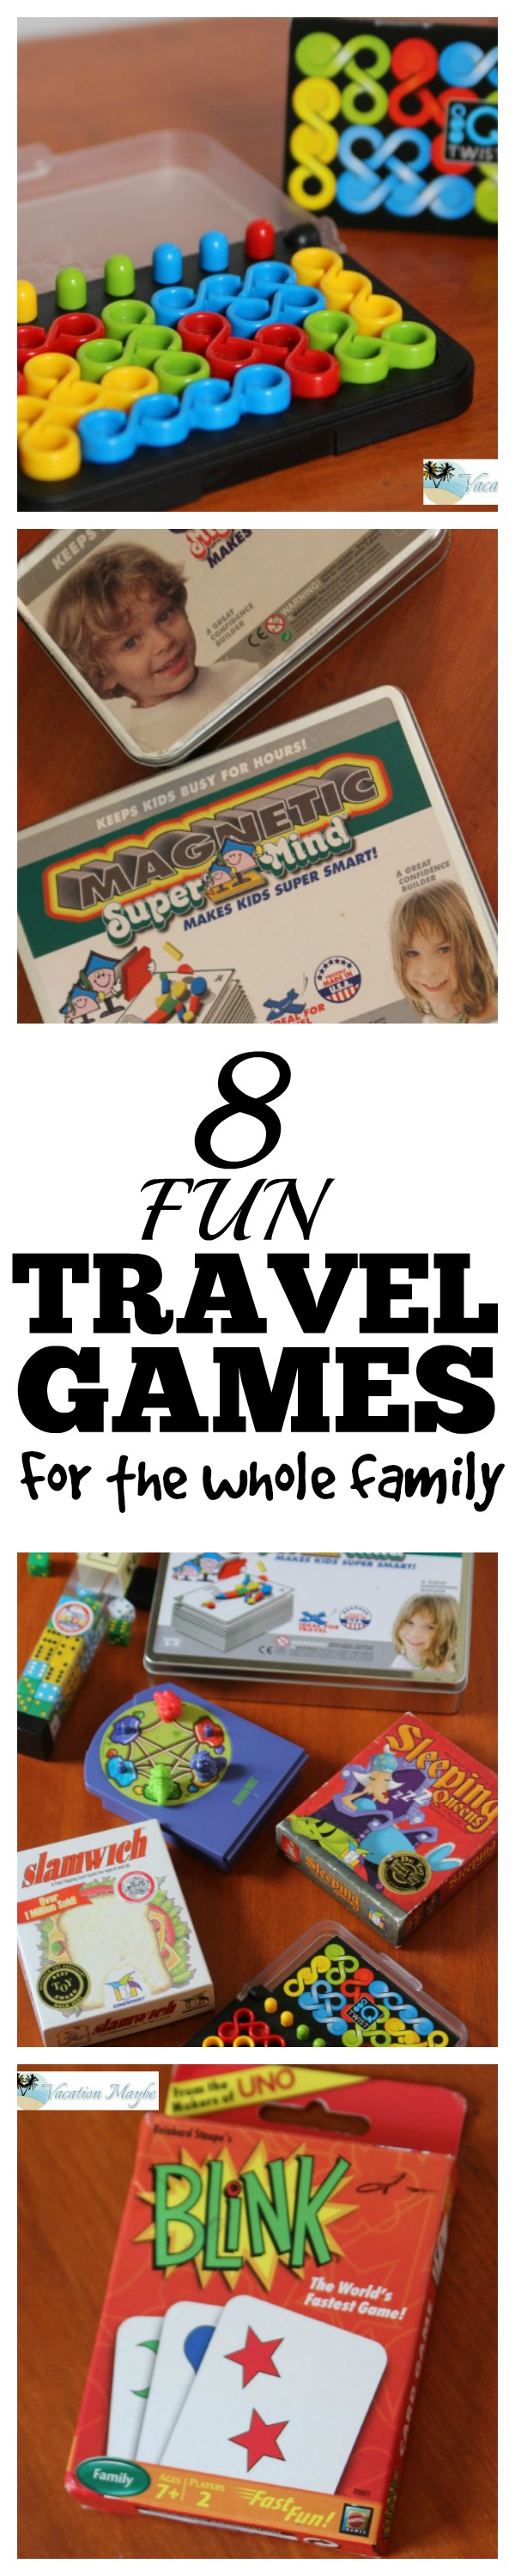 Travel Games for the whole family